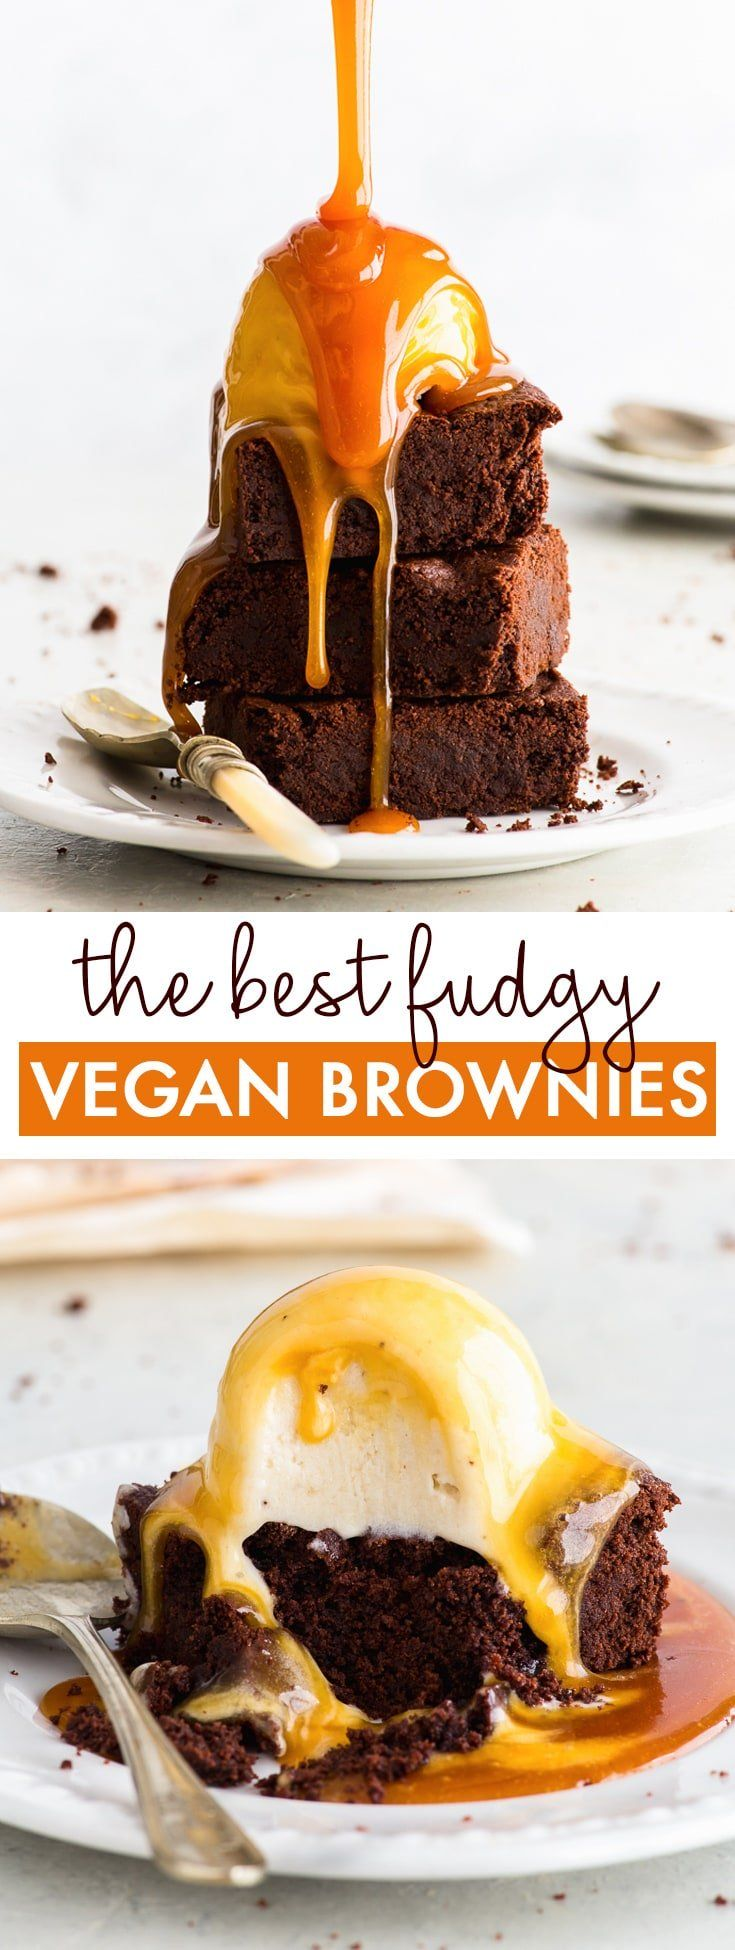 The Best Vegan Chocolate Brownies. Ever. - These vegan chocolate brownies will blow your mind. Deca